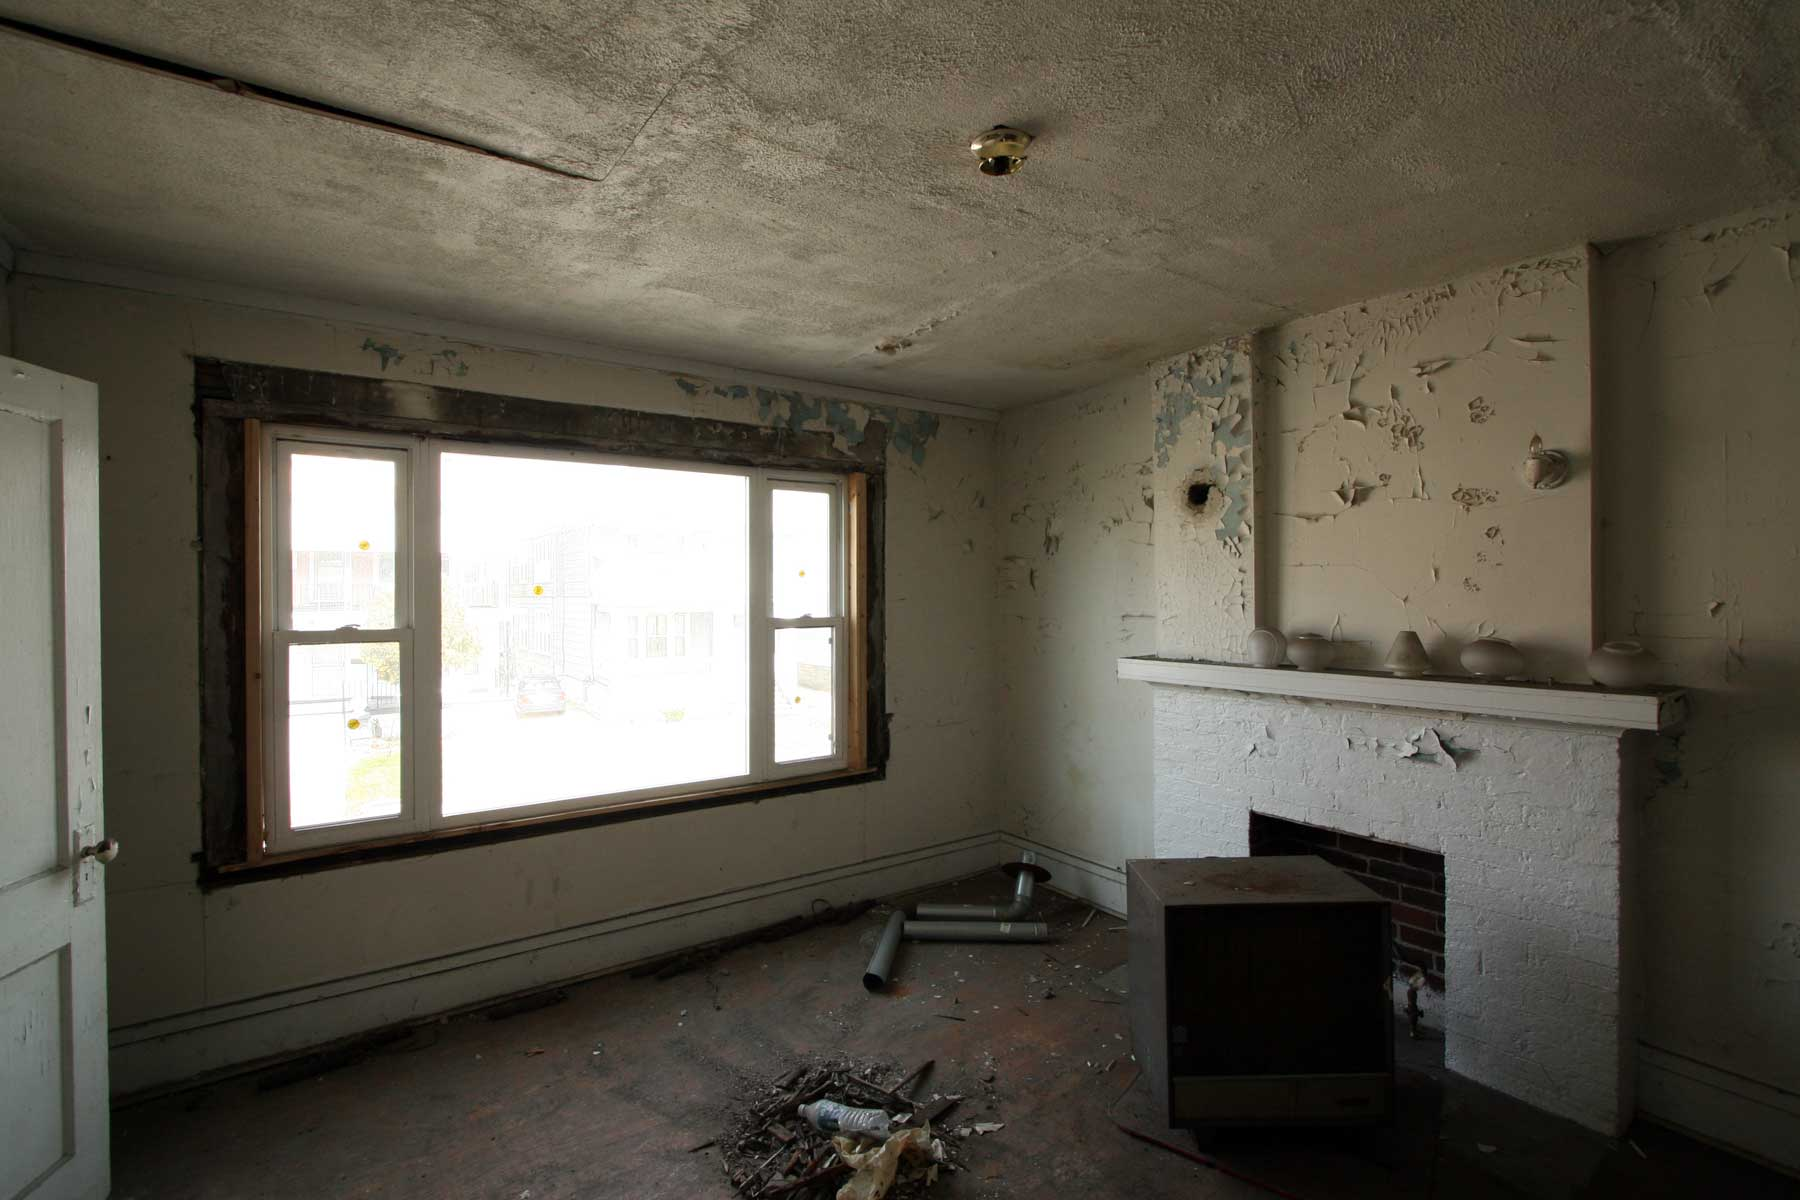 Studio Apartments' Existing Fireplace